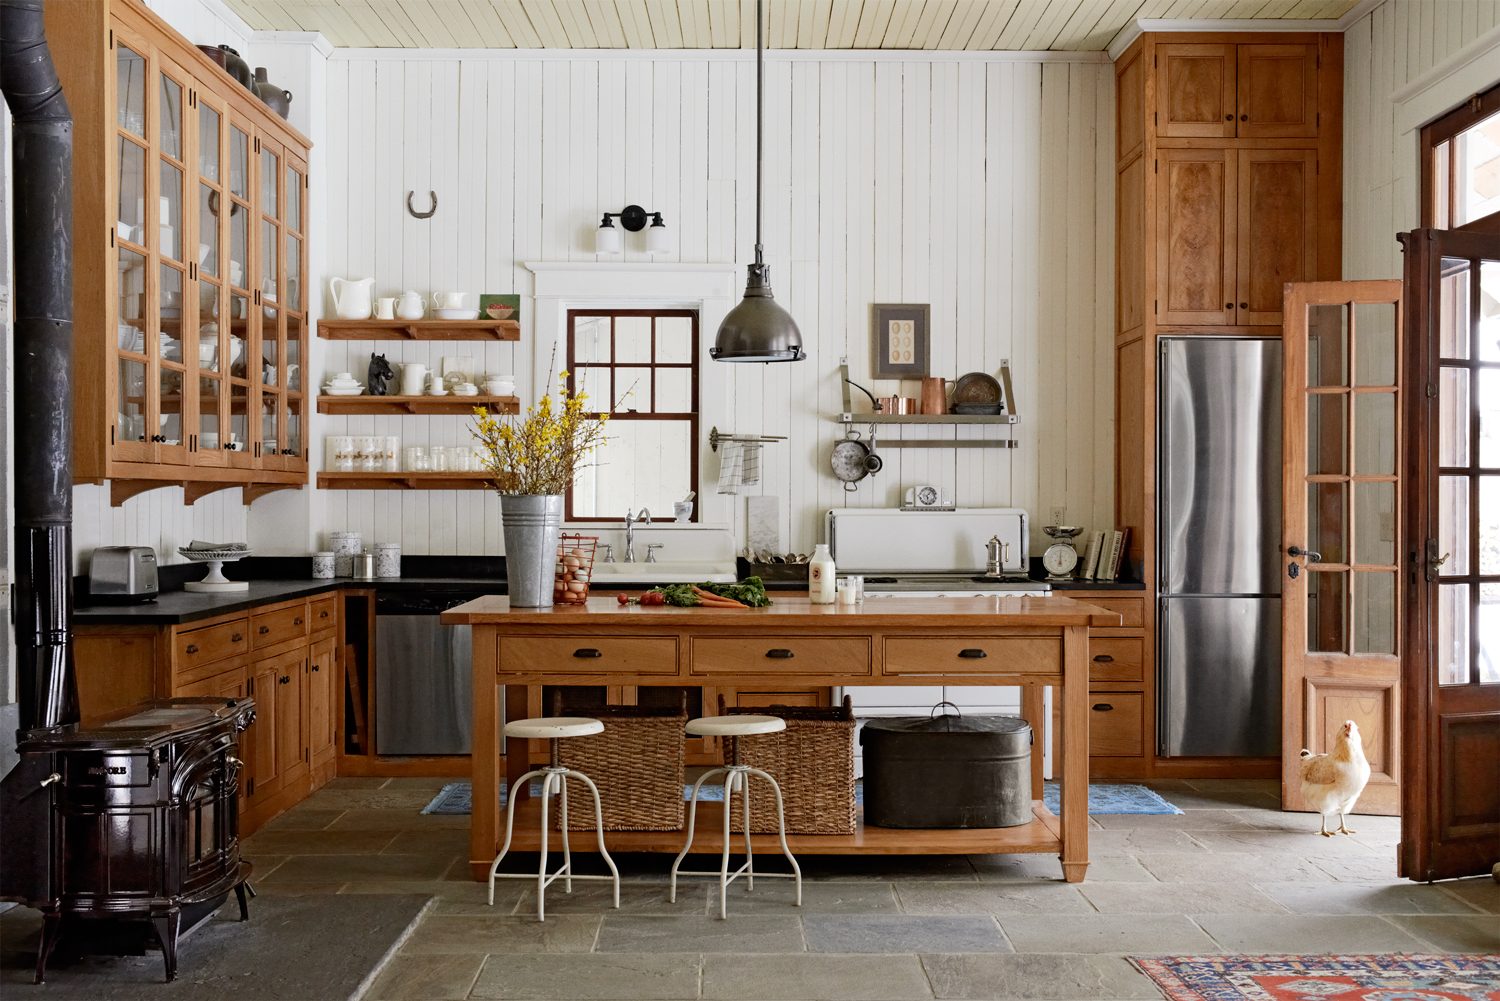 8 ways to add authentic farmhouse style to your kitchen - Farmhouse style kitchen cabinets ...